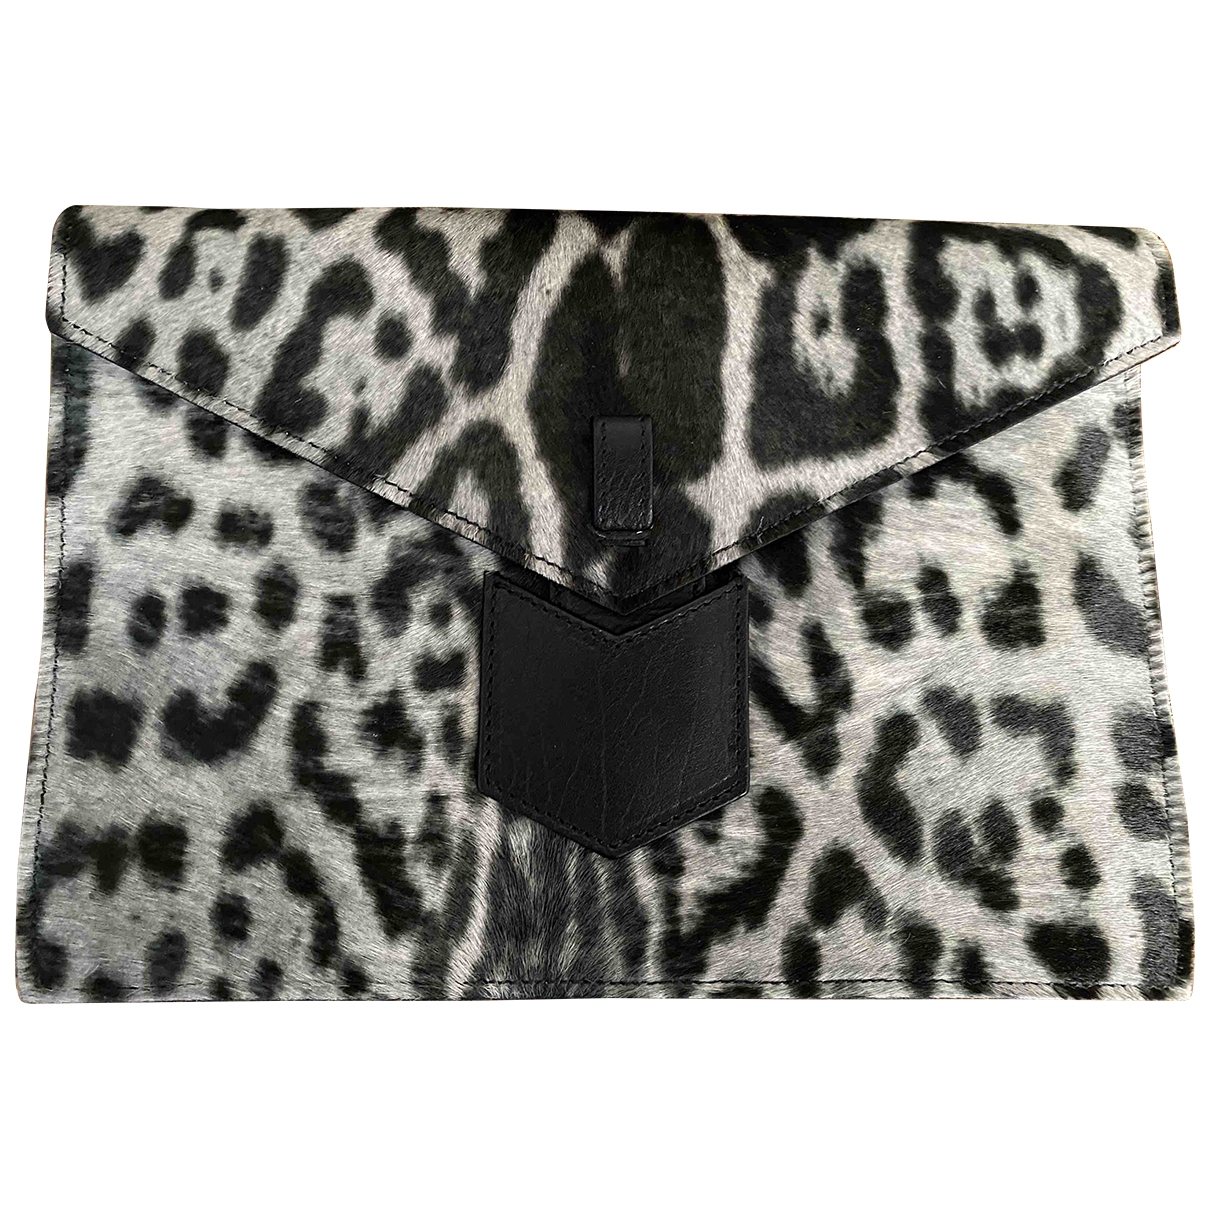 Yves Saint Laurent \N Clutch in  Grau Kalbsleder in Pony-Optik